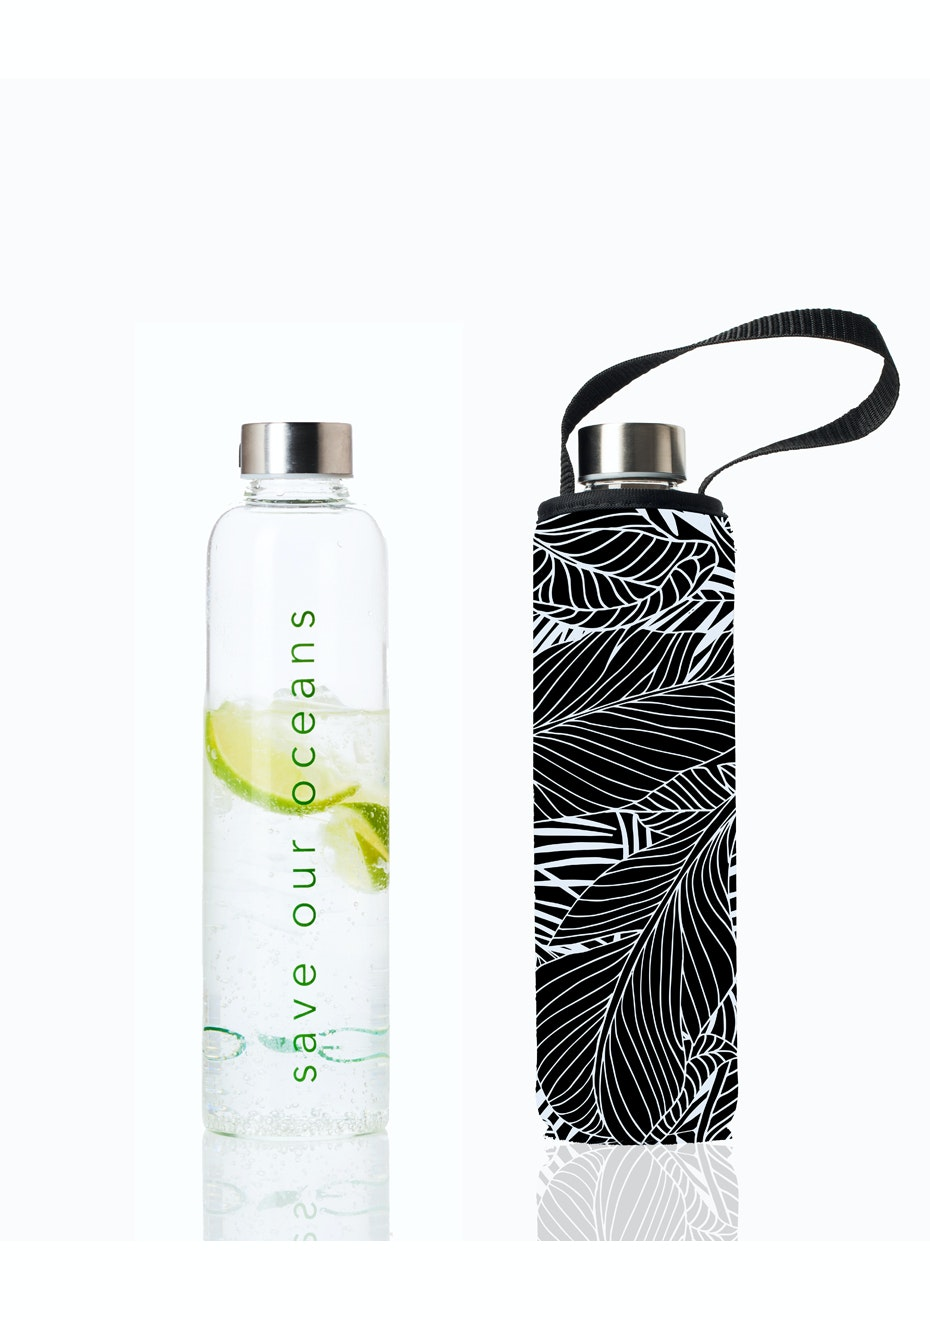 BBBYO - Glass Is Greener Bottle 750 ml + Carry Cover (Black Leaf Print) -750 ml